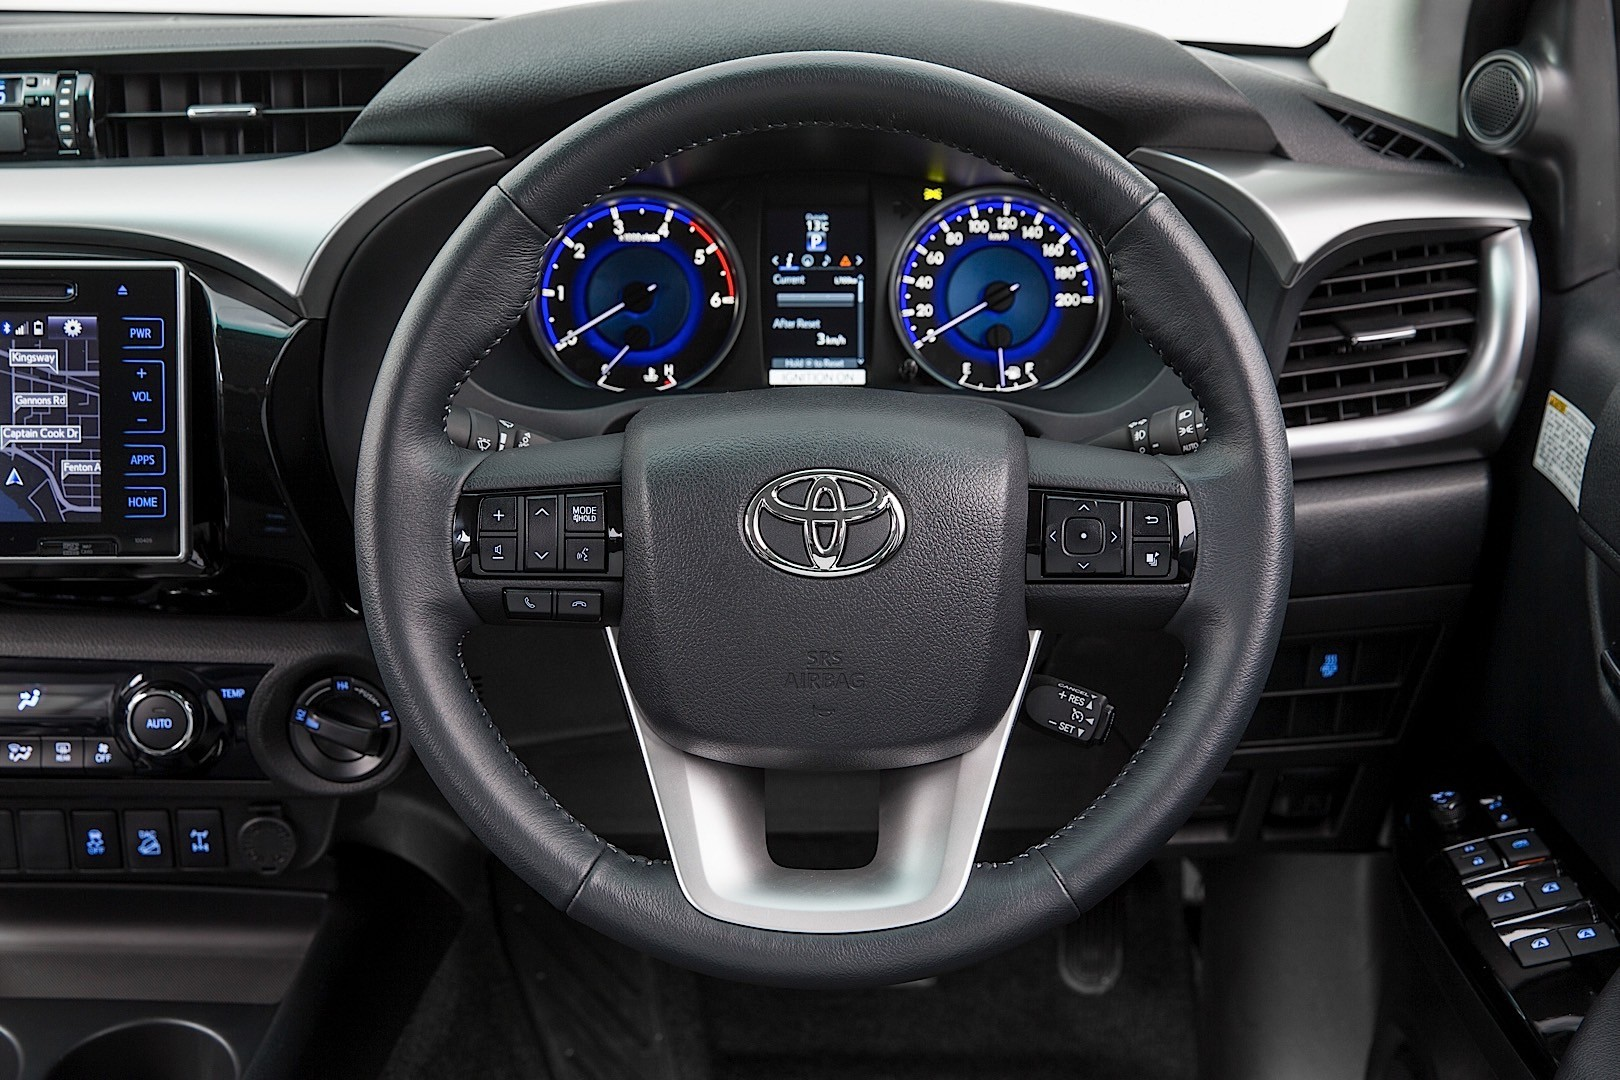 Toyota Hilux Reveals Its New Interior, But Only for Australians - autoevolution